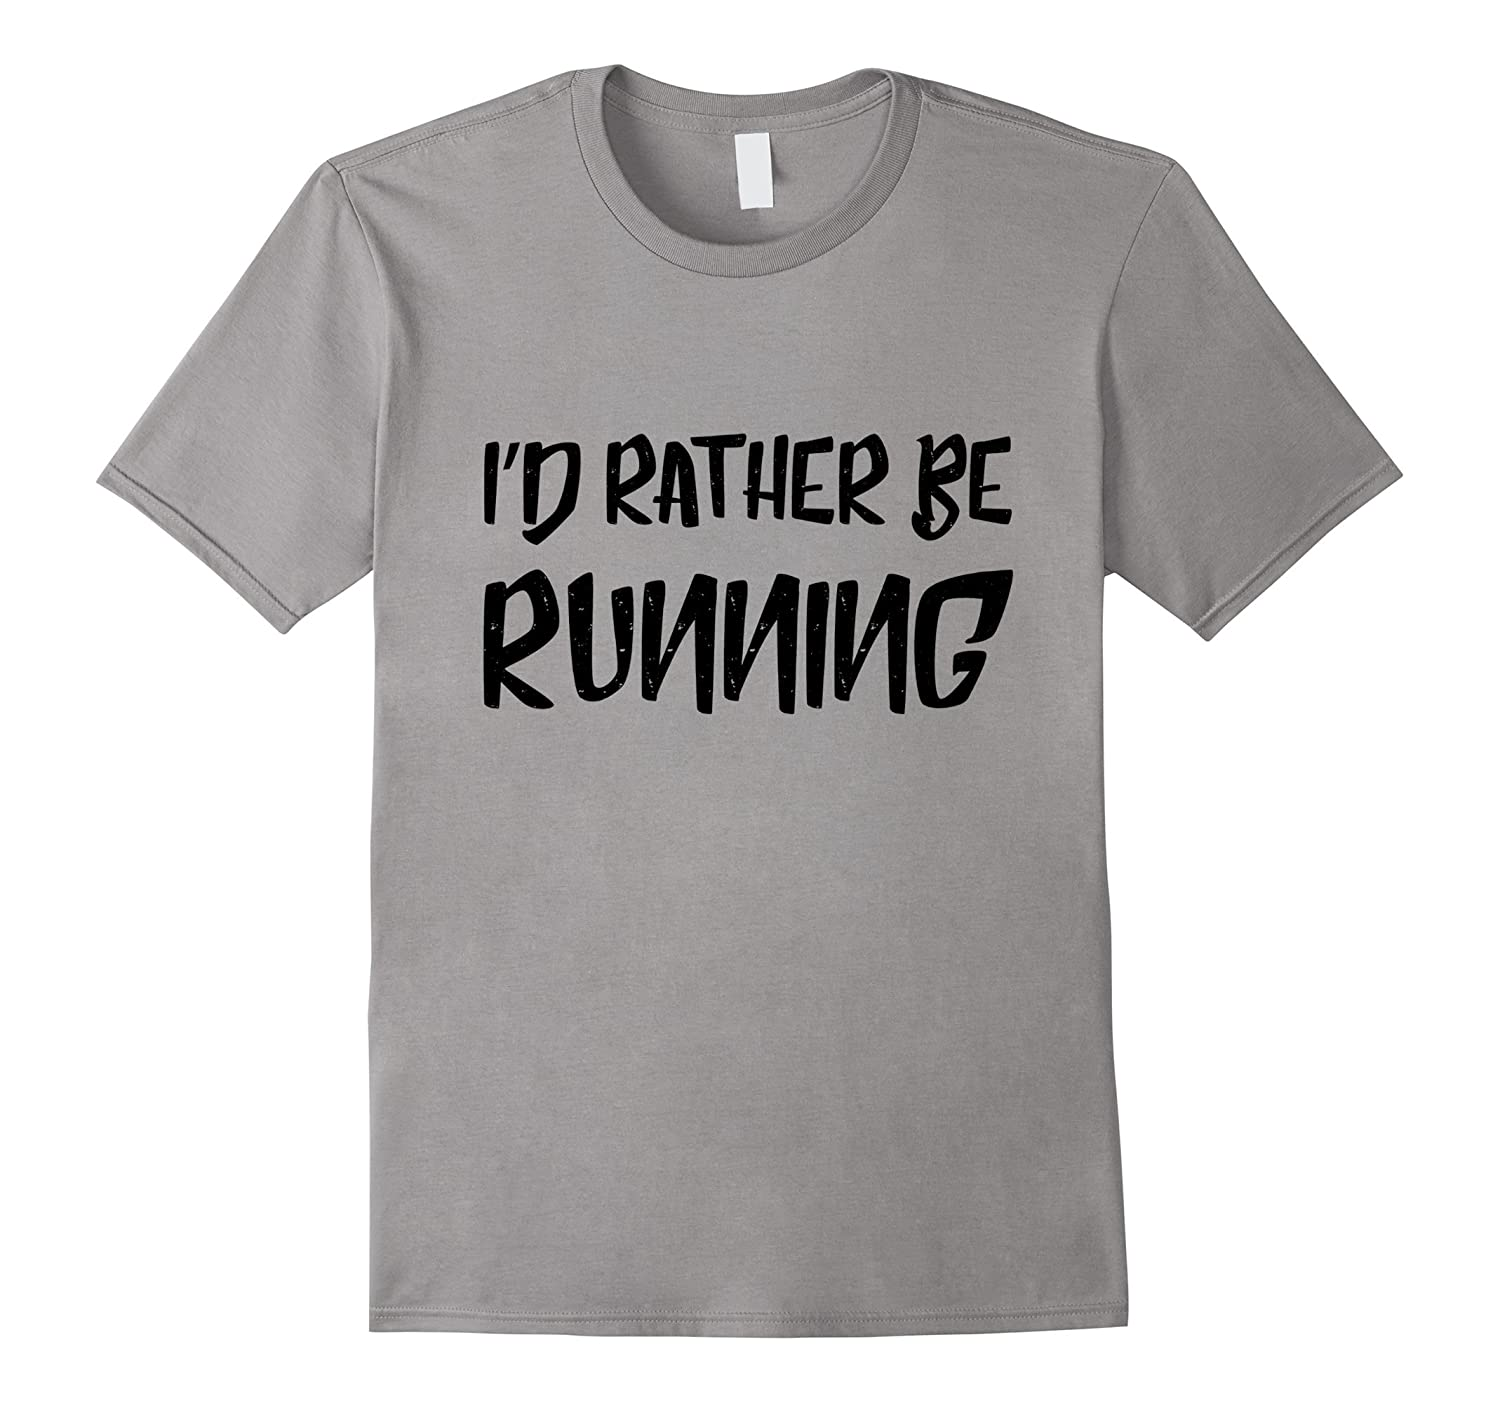 Id rather be running T-shirt Track Fast Run Funny Tee-PL